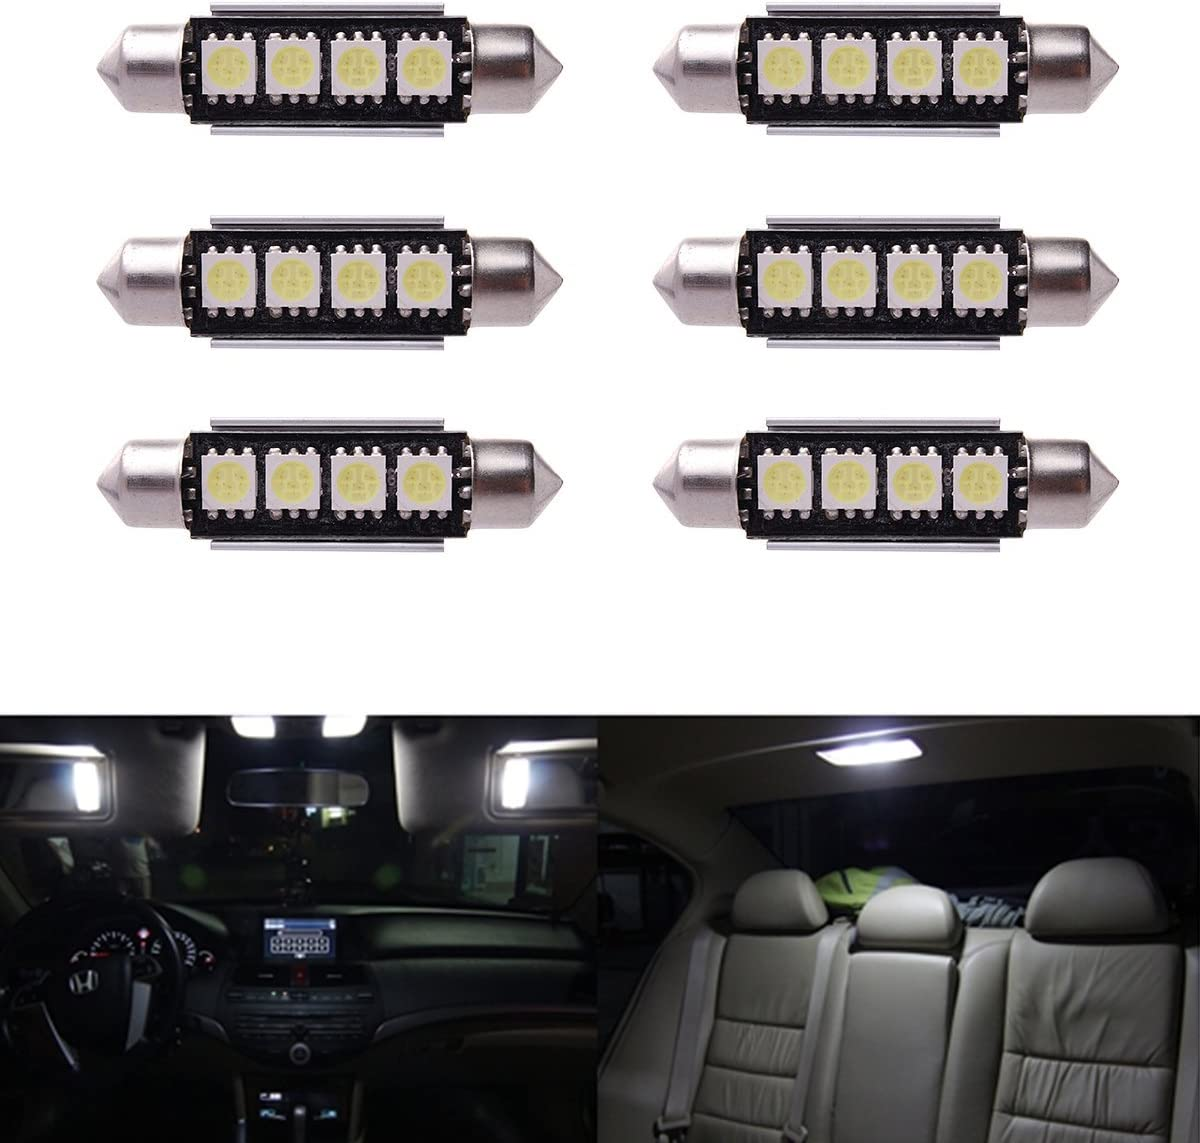 XCSOURCE 6 x Car Dome 5050 SMD LED Canbus Bombilla Interior del Adorno LED 42MM Blanco LD308